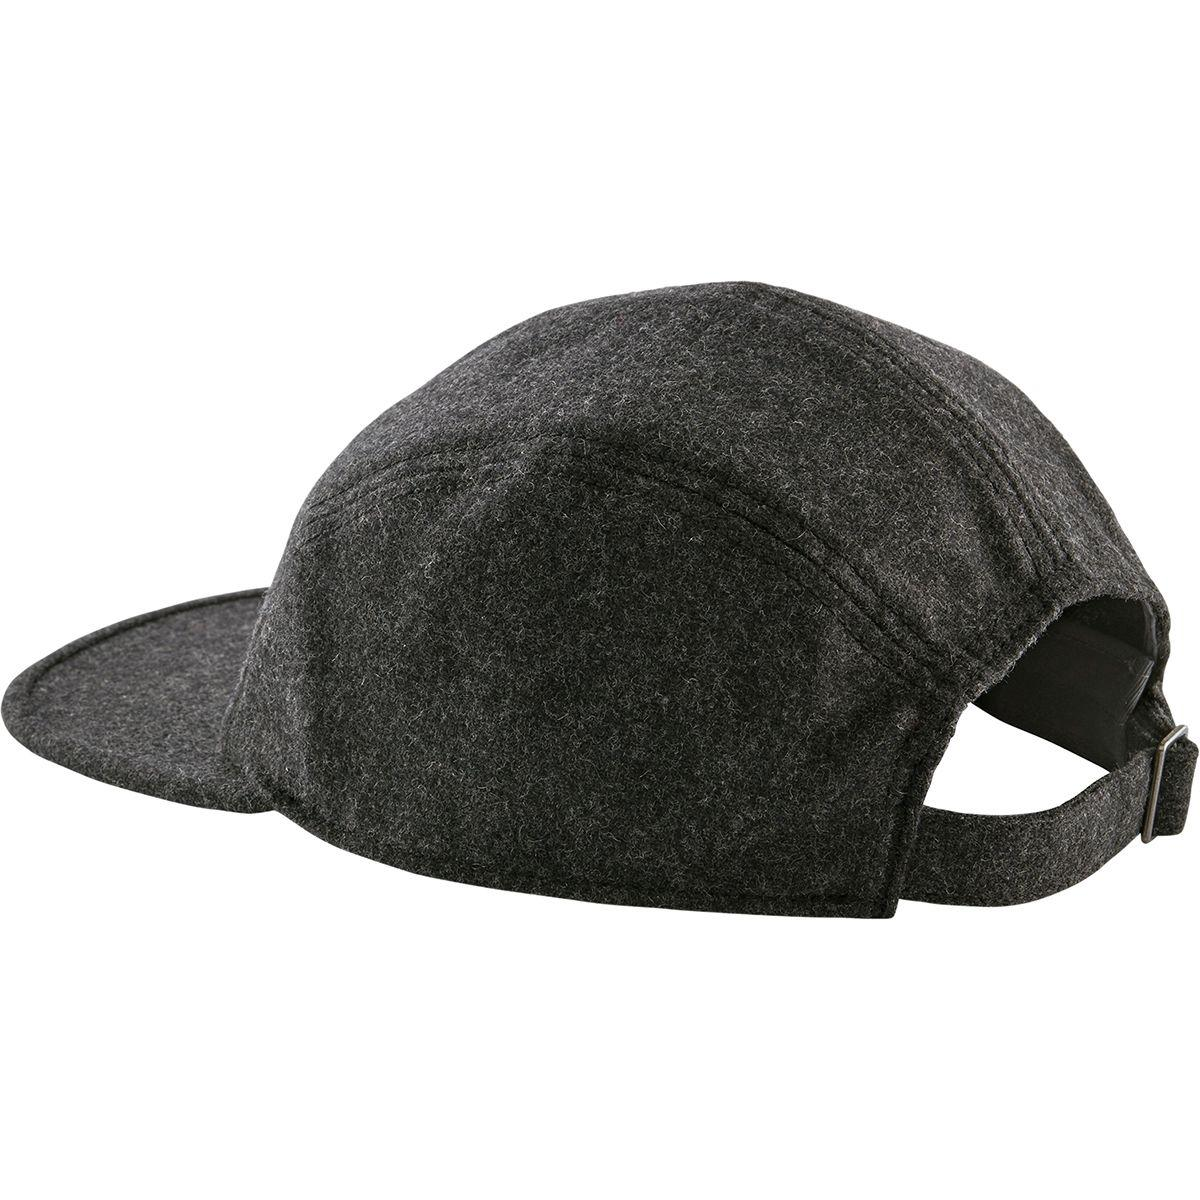 091a076e Patagonia - Gray Recycled Wool Cap for Men - Lyst. View fullscreen